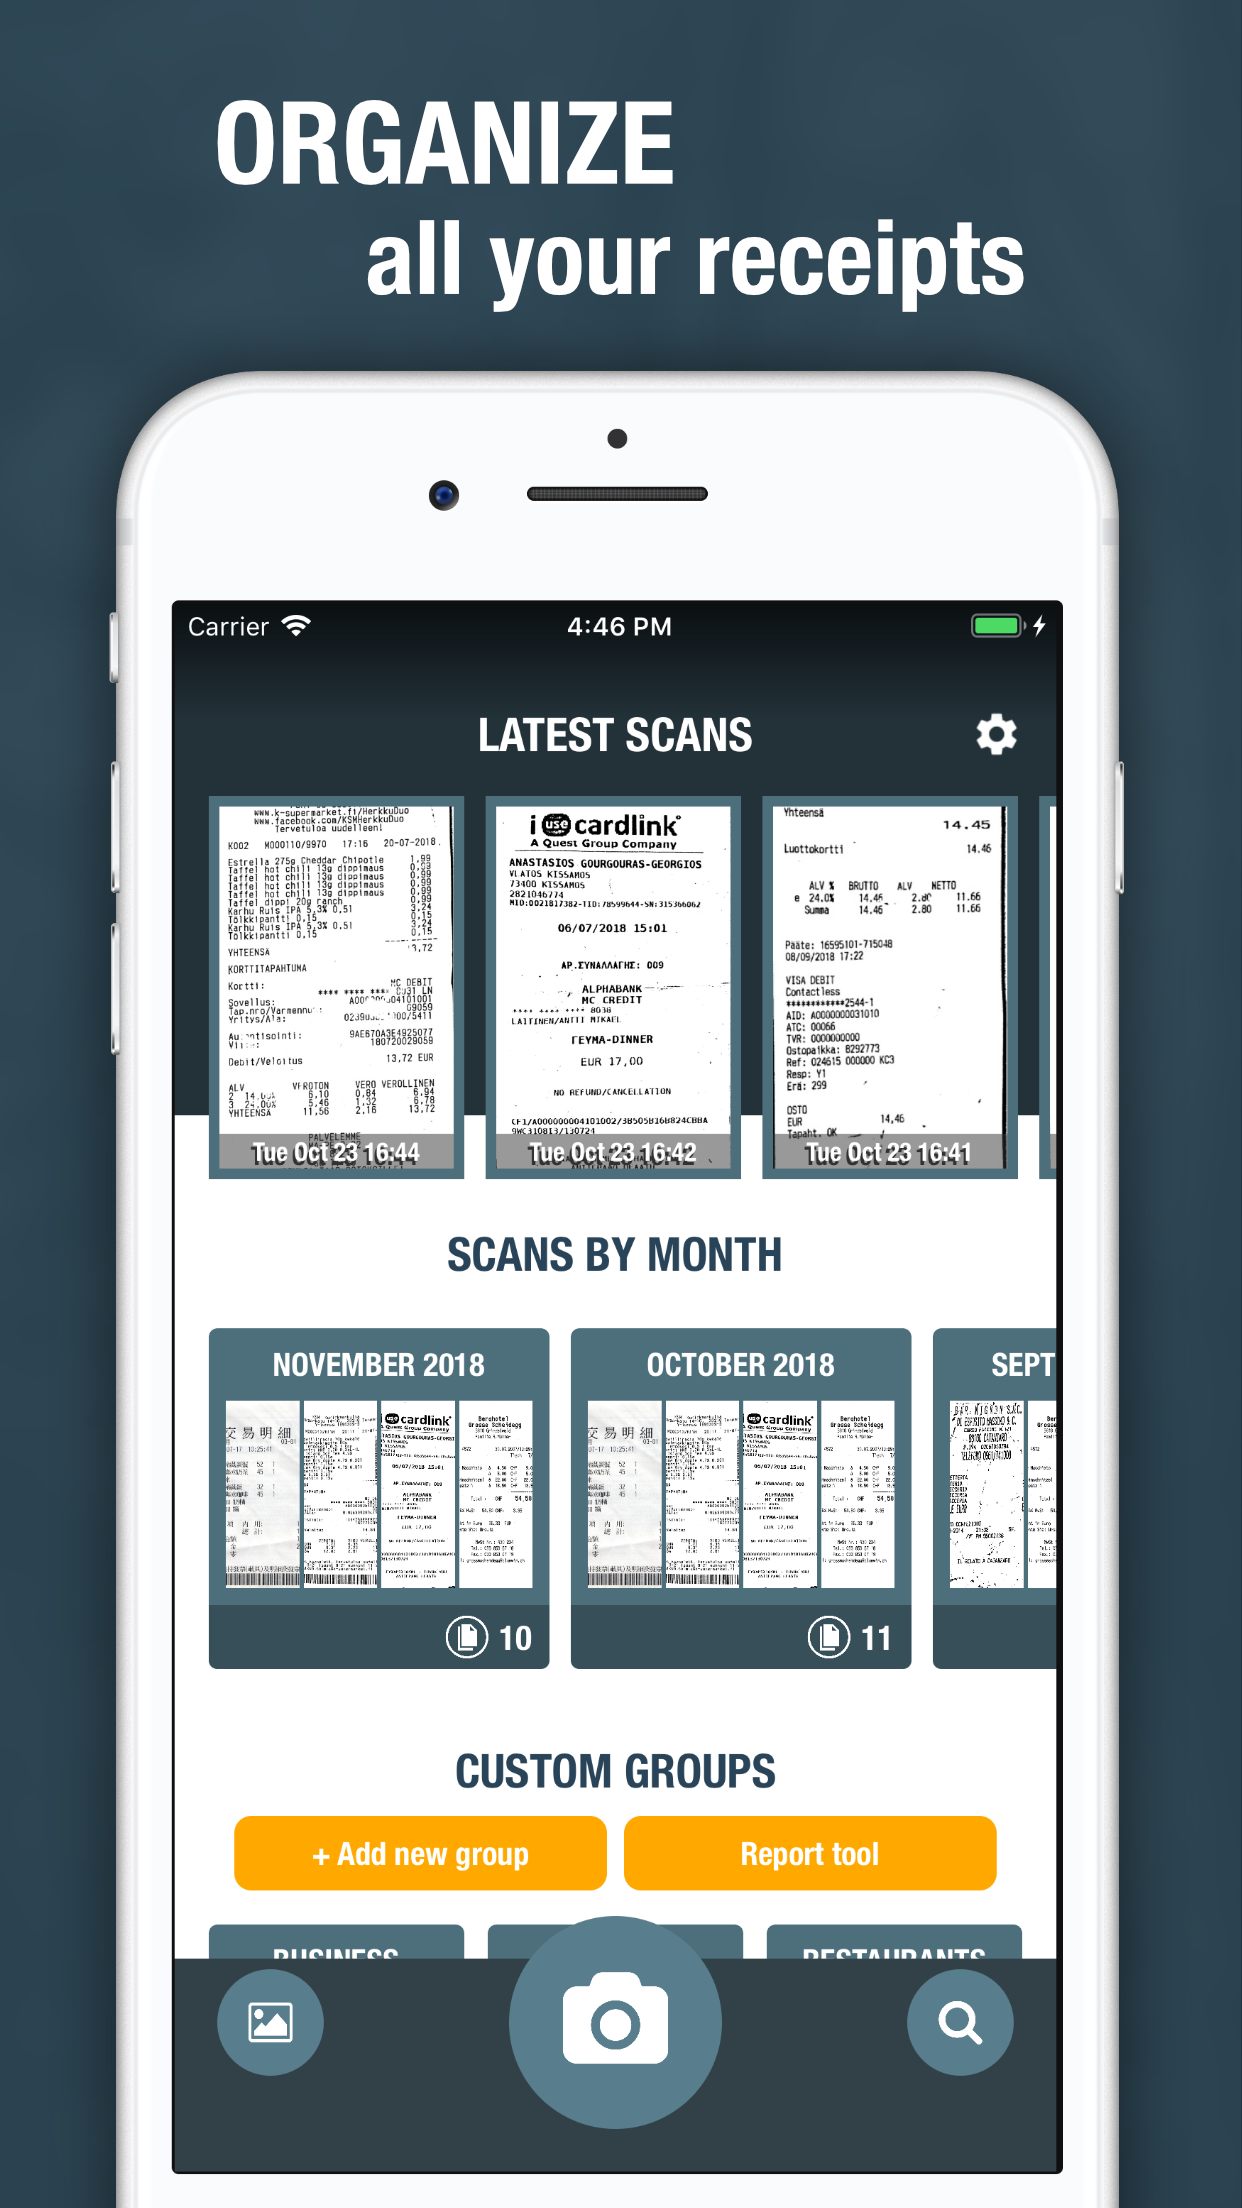 A want to share a receipt scanner app I made a while back